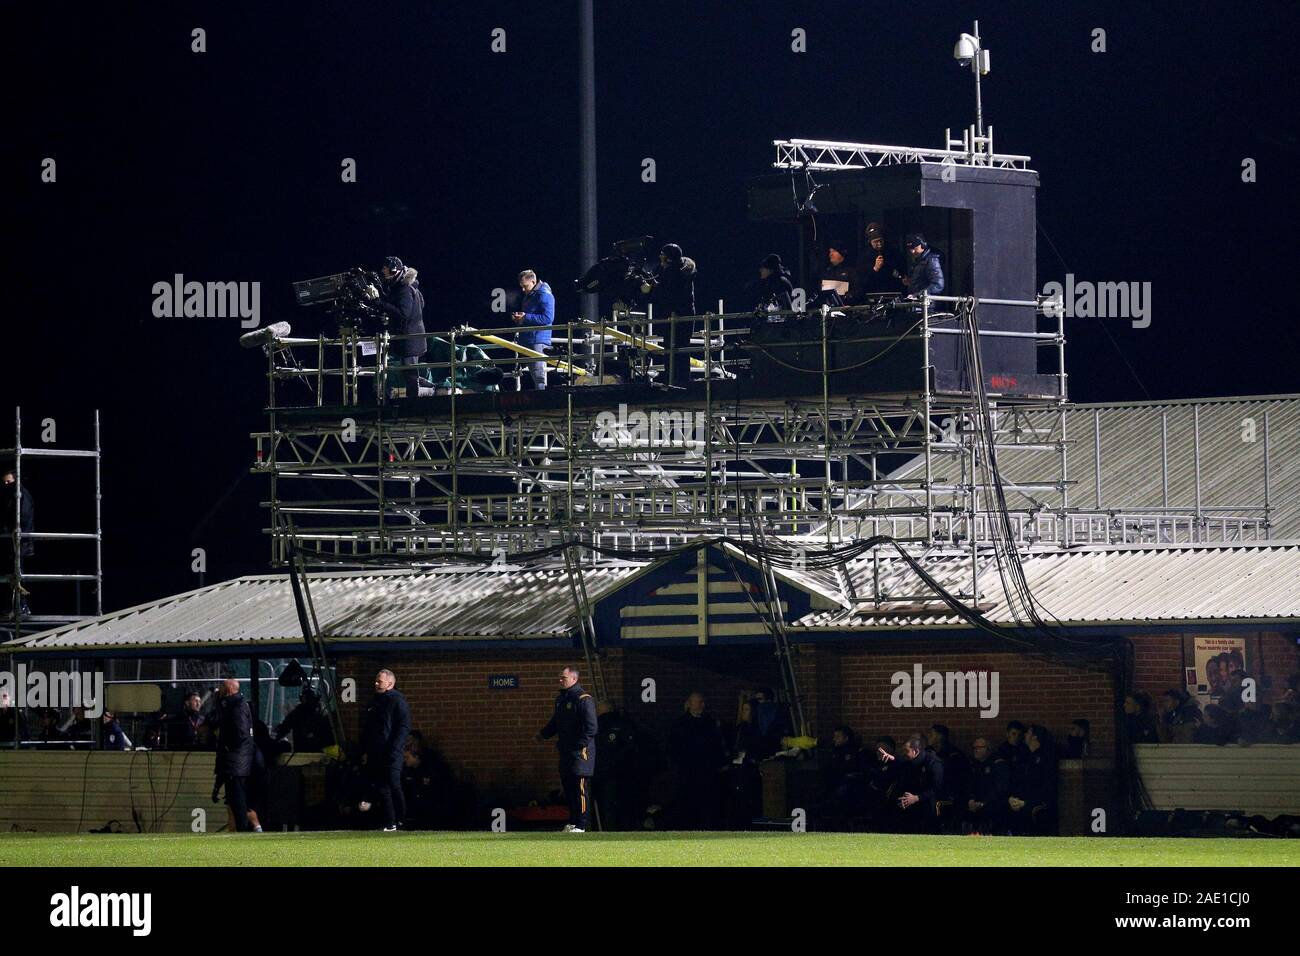 BBC TV gantry erected above the dugout area during Maldon & Tiptree vs Newport County, Emirates FA Cup Football at the Wallace Binder Ground on 29th N Stock Photo